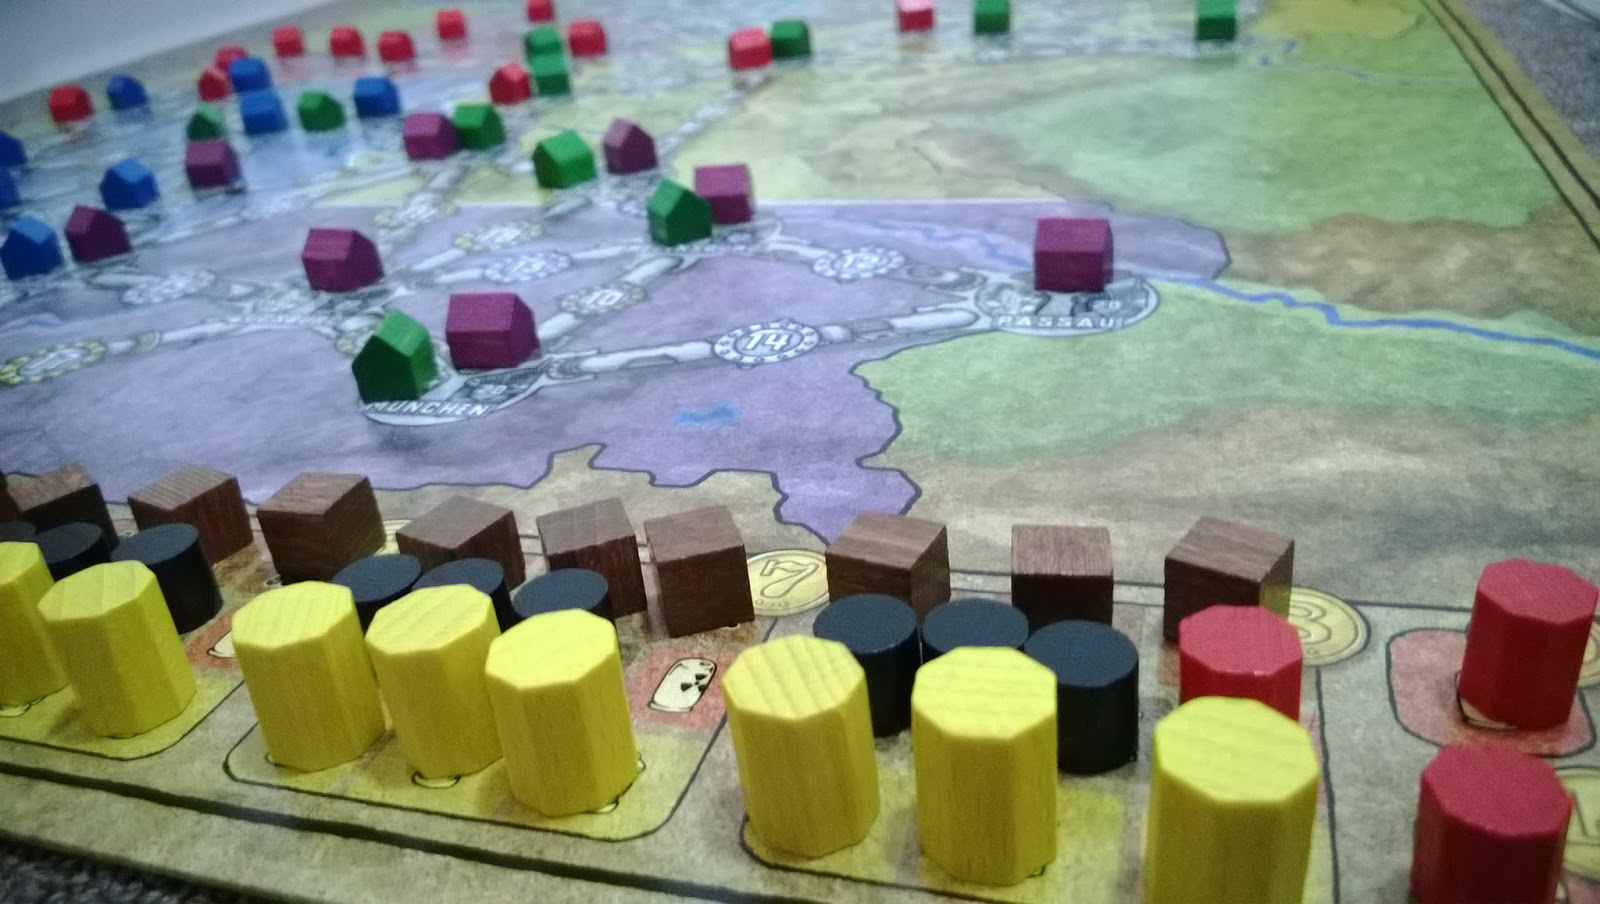 Power Grid mid game, wooden houses, resources line the board